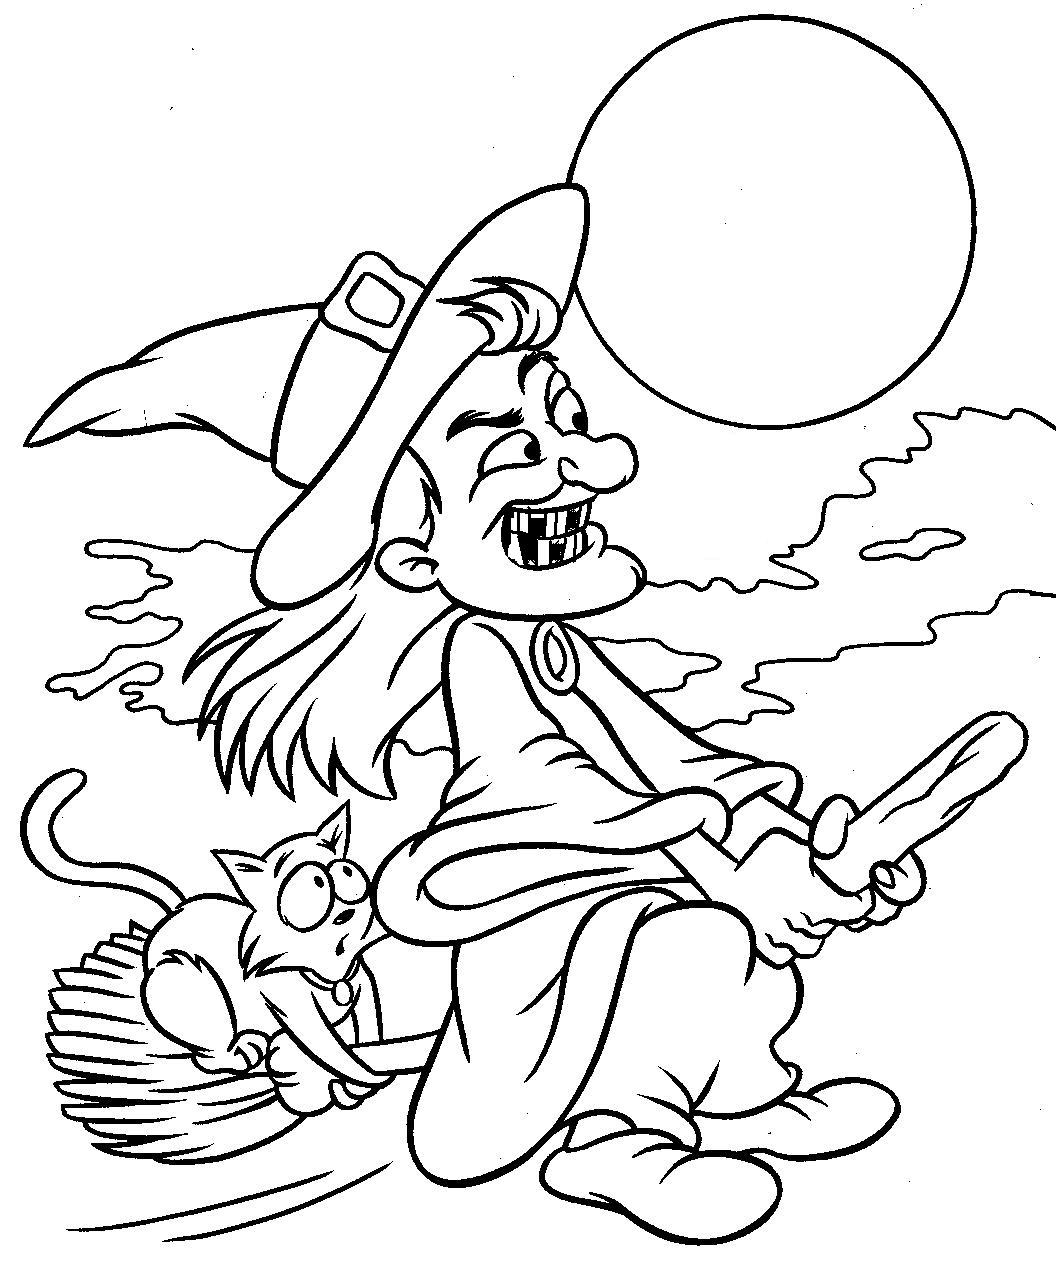 1056x1264 Halloween Witches Coloring Pages Printable In Pretty Print Pict